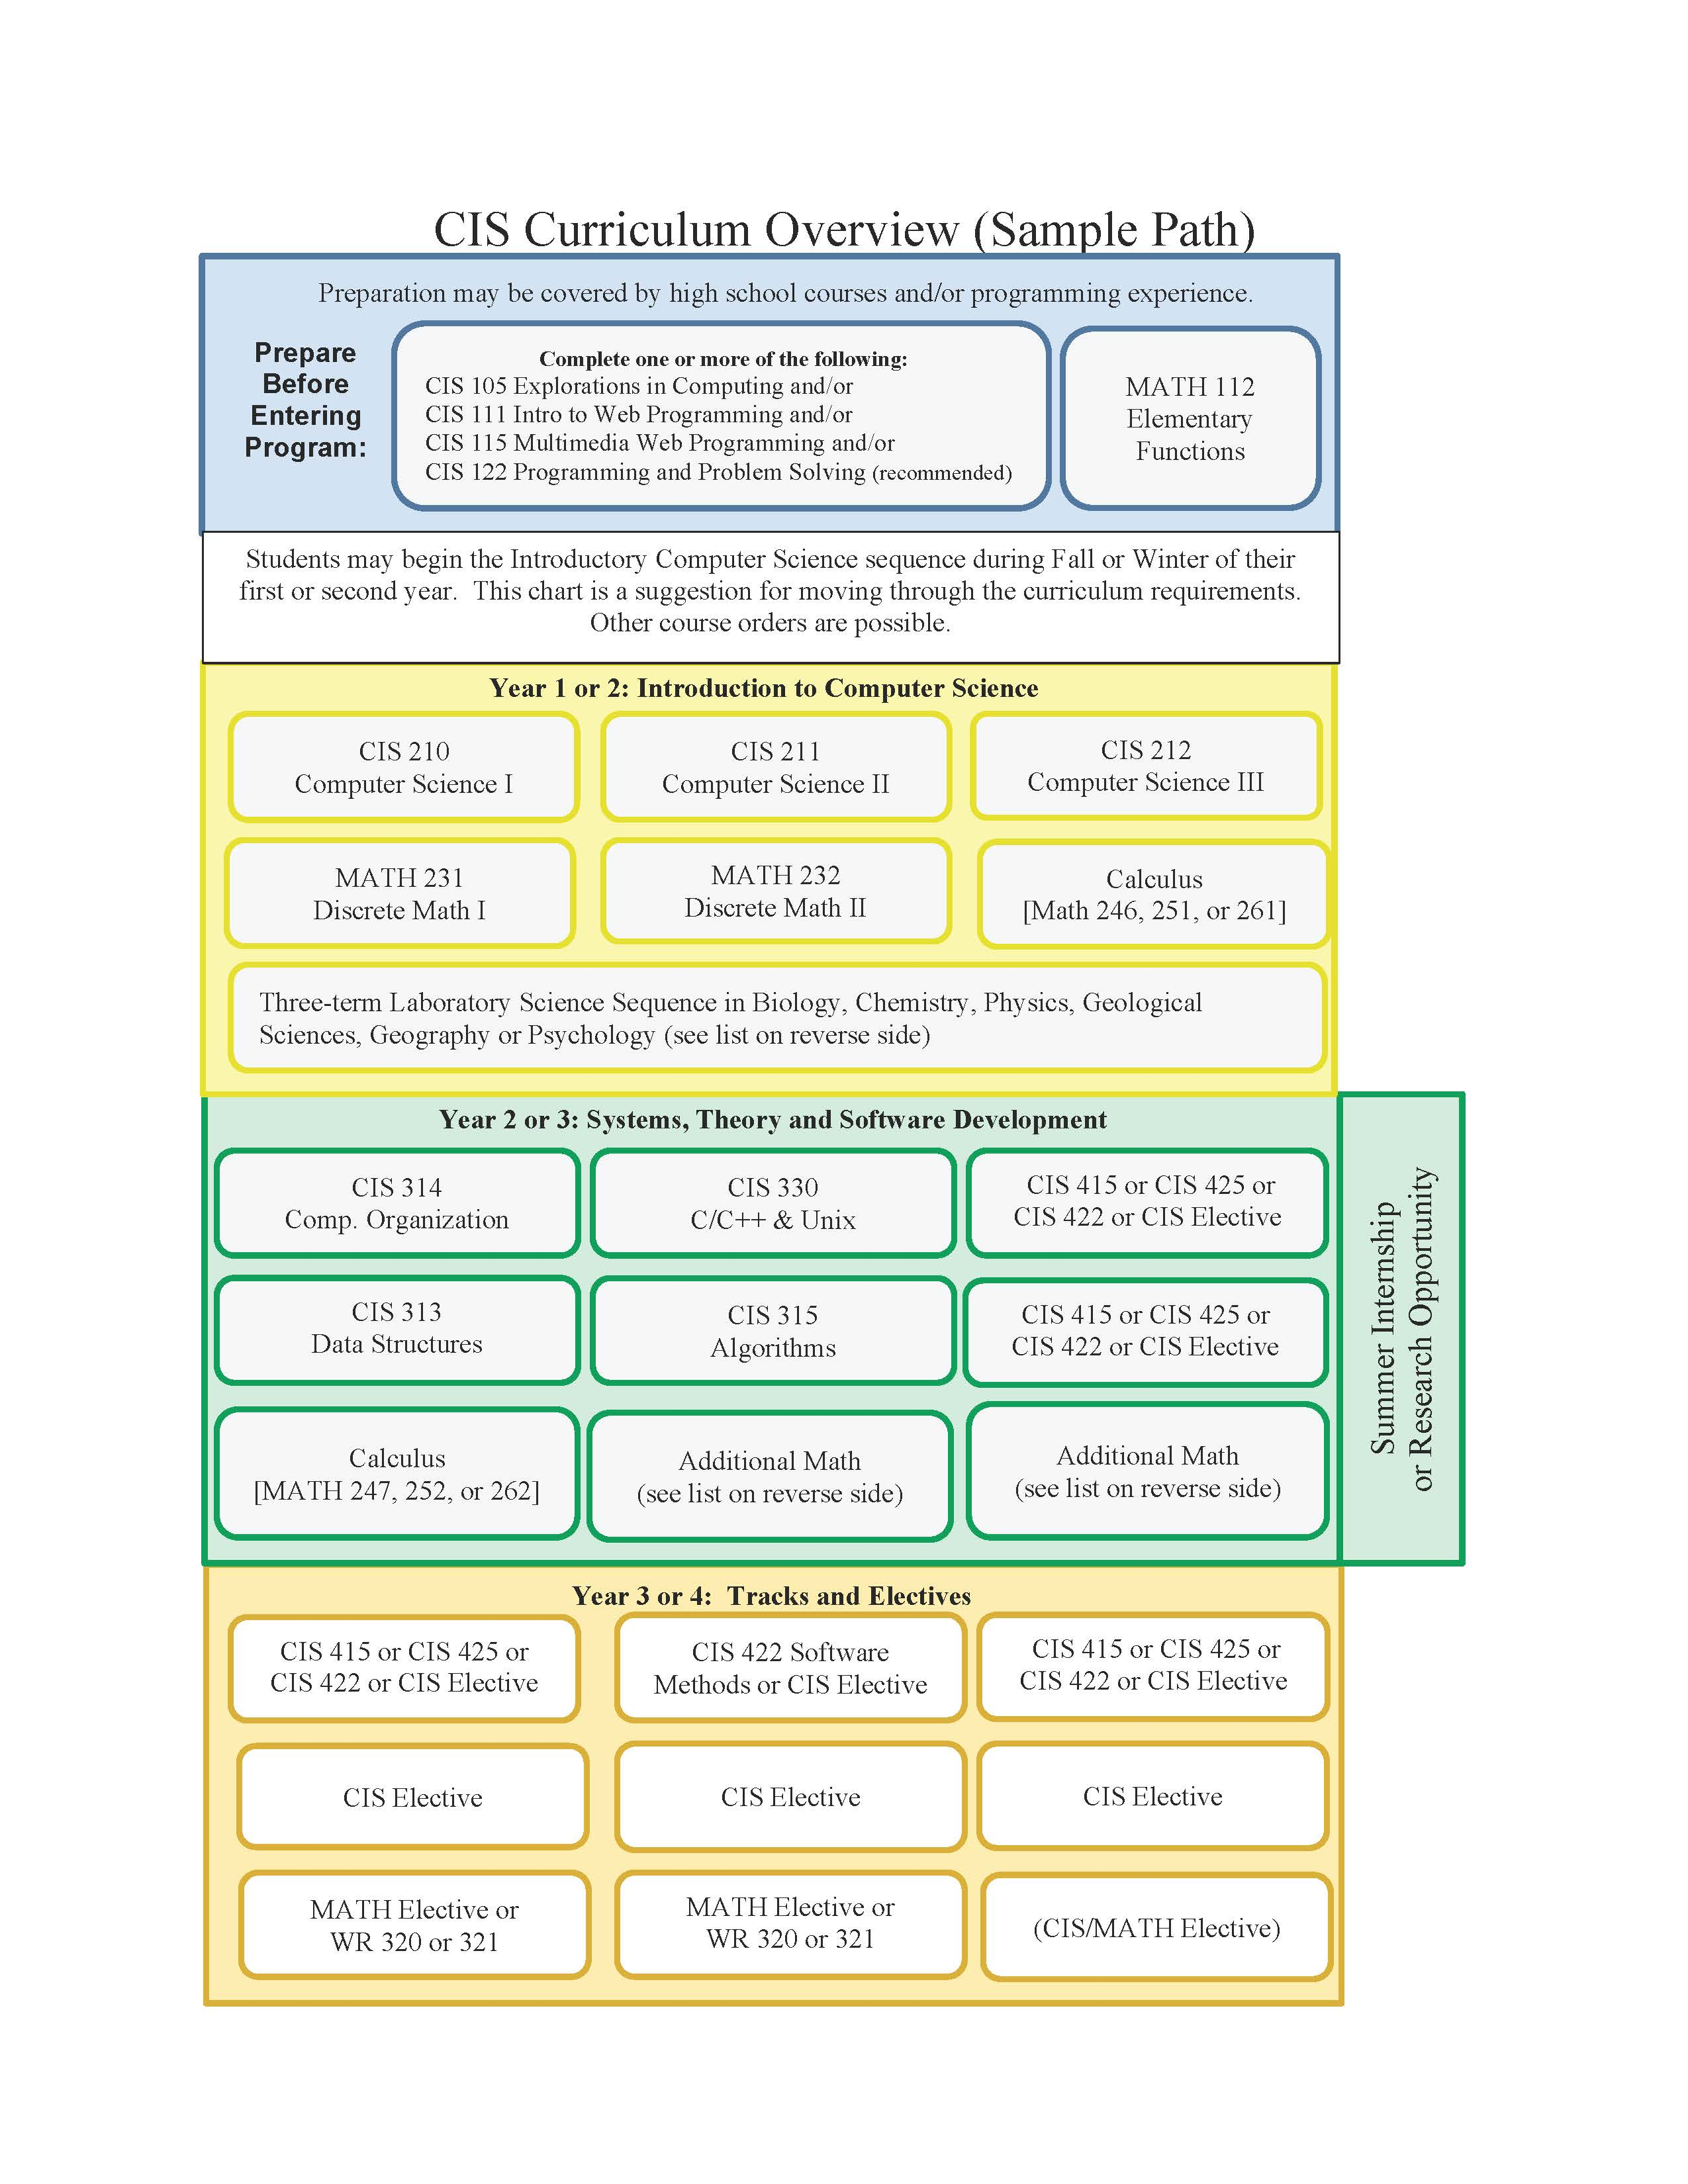 Sample Pathway 1